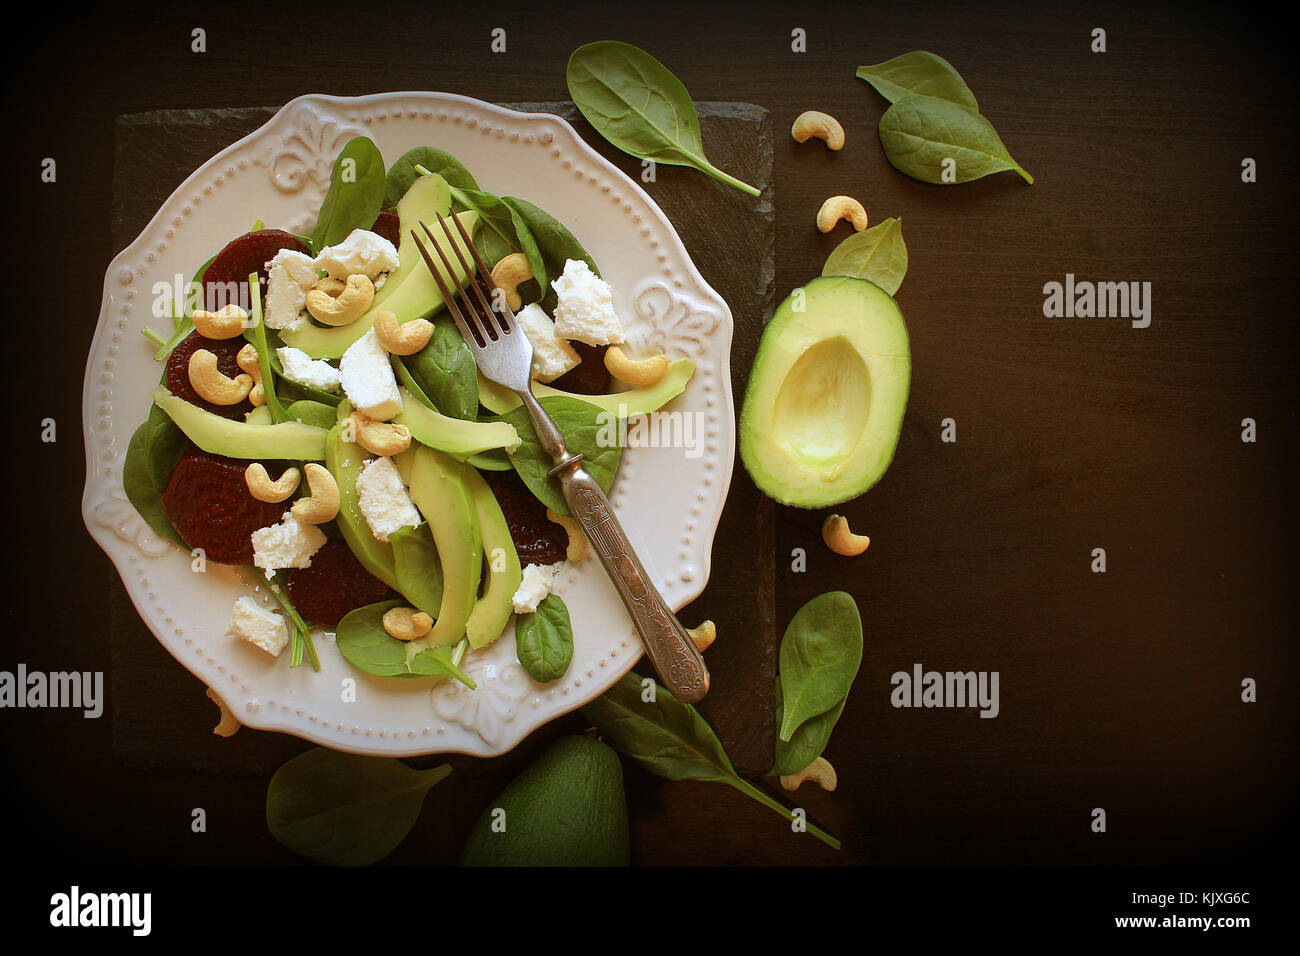 Healthy beet salad with fresh sweet baby spinach, nuts, feta cheese and avocado. Plate with salad on dark table. - Stock Image